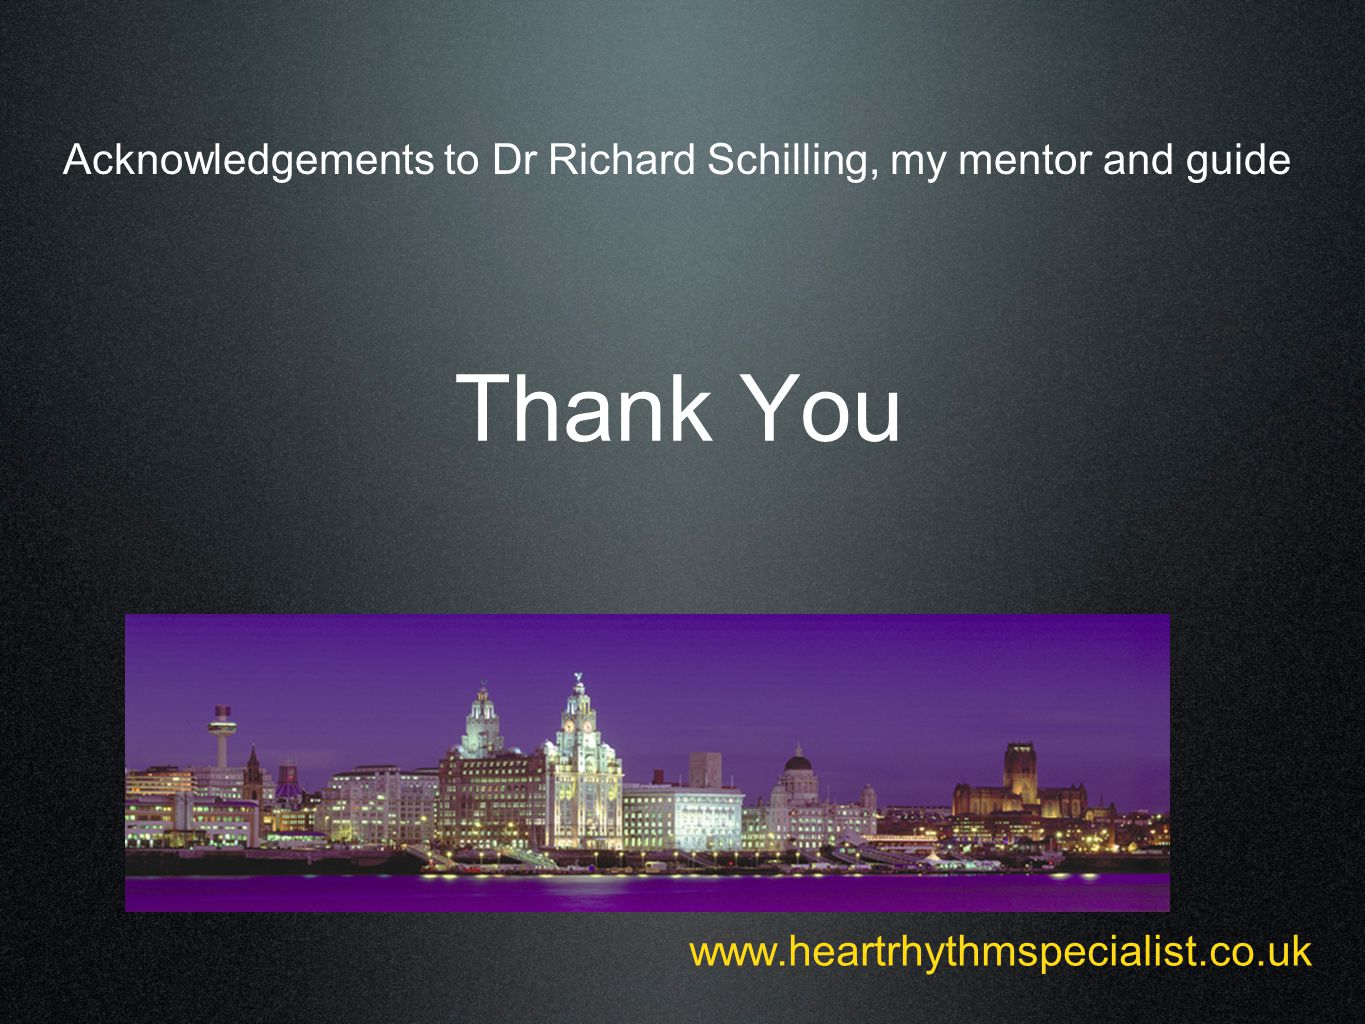 Acknowledgements to Dr Richard Schilling, my mentor and guide